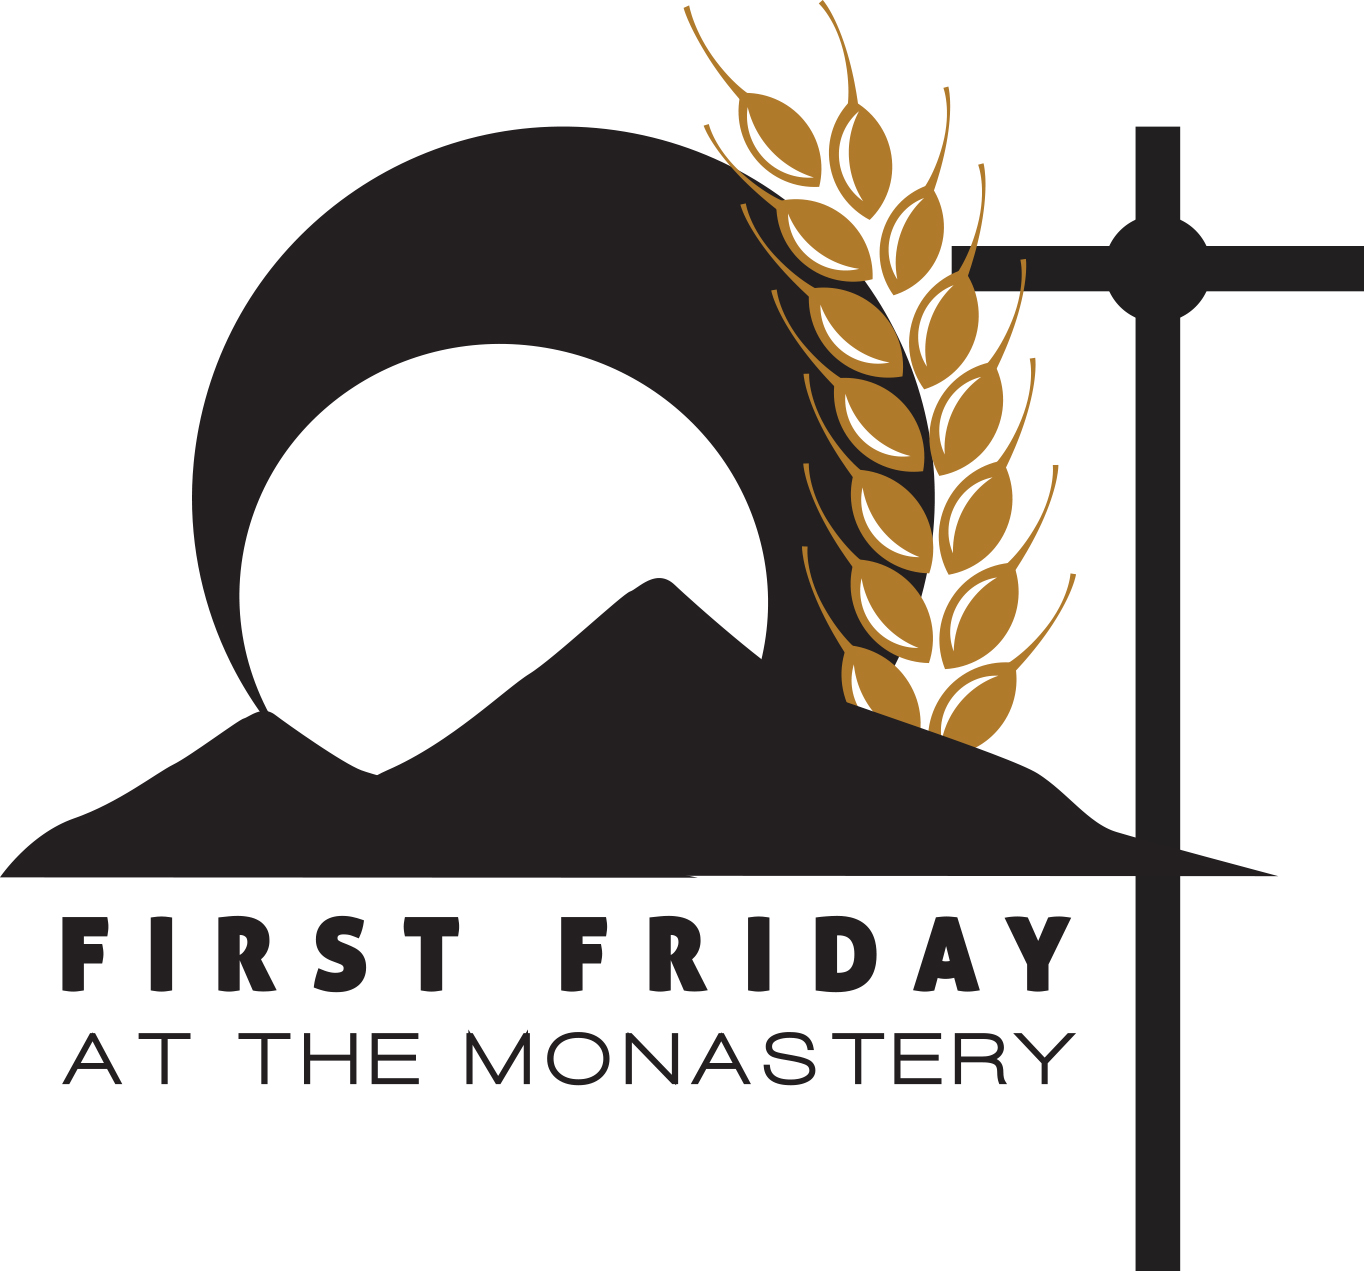 First Friday at the Monastery - JUNE